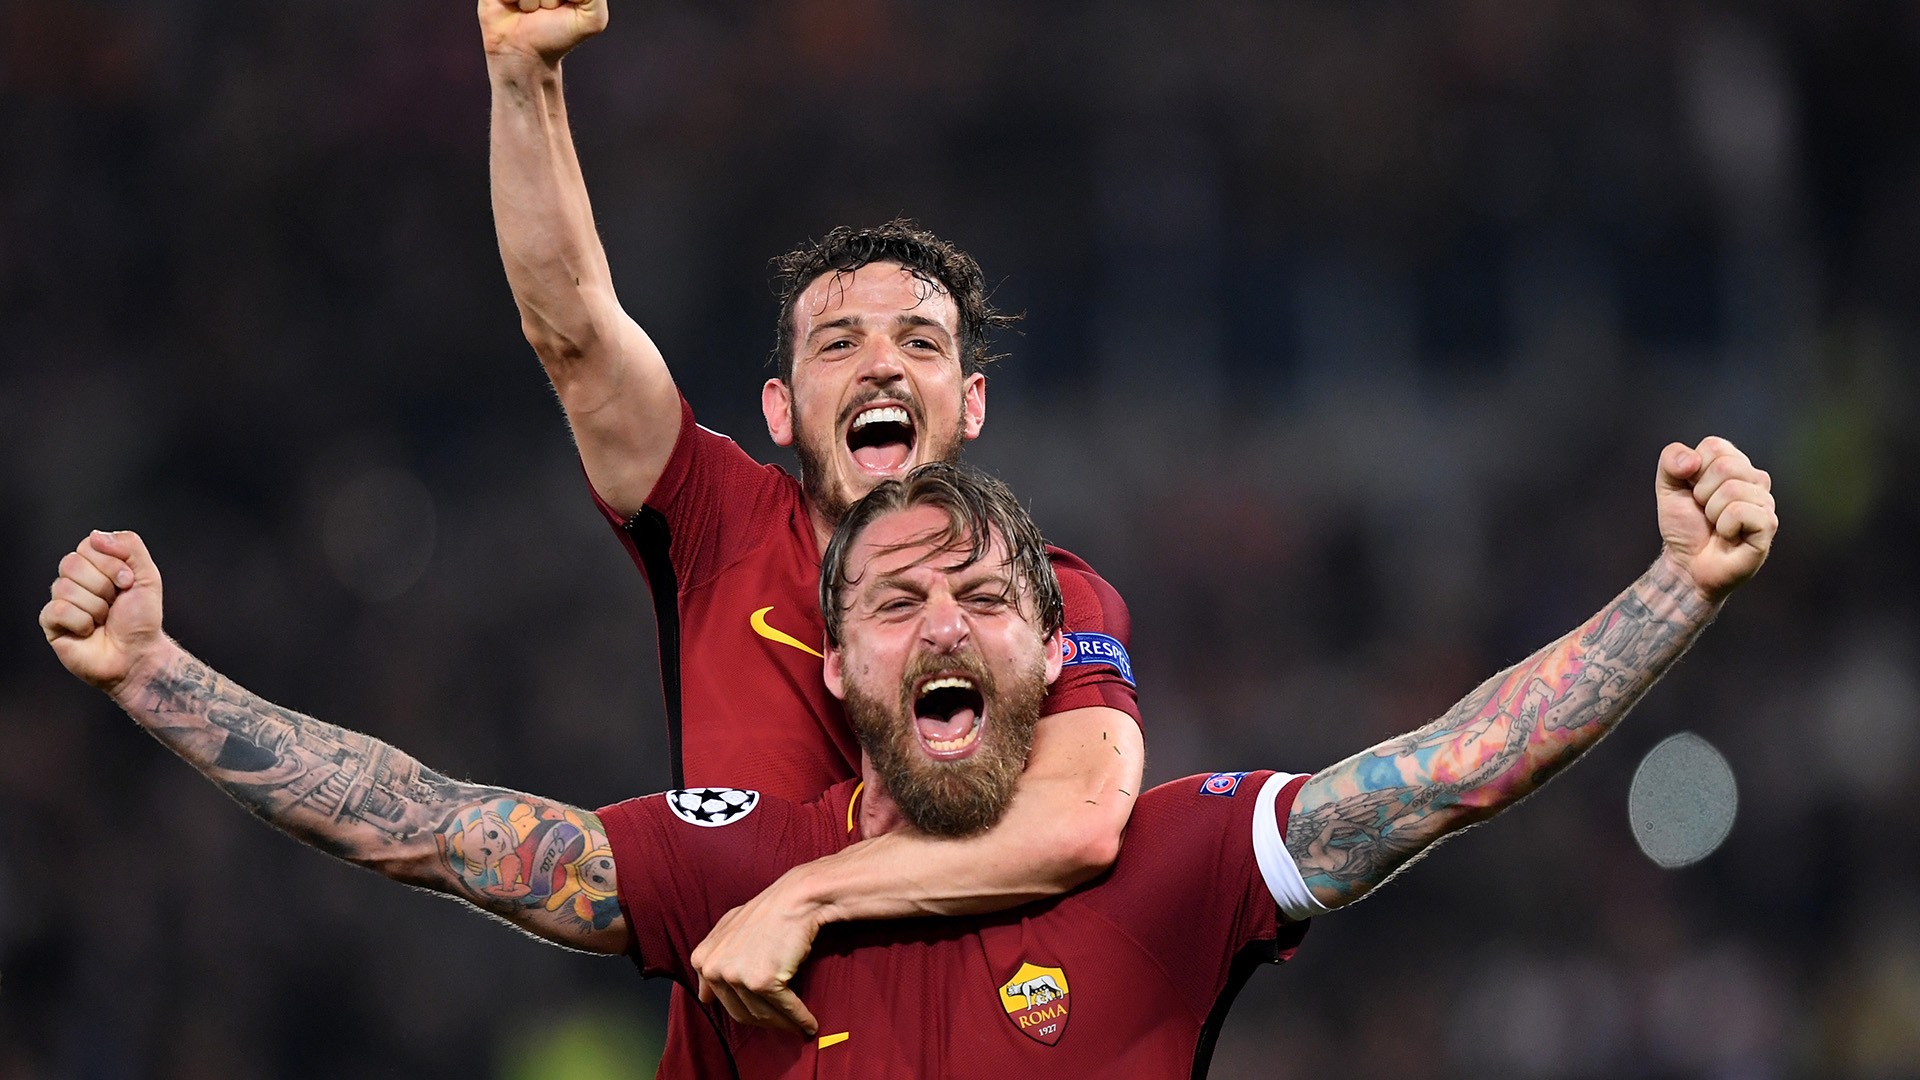 ROME, ITALY - APRIL 10: Daniele De Rossi of AS Roma celebrates his sides victory with Alessandro Florenzi of AS Roma after the UEFA Champions League Quarter Final Second Leg match between AS Roma and FC Barcelona at Stadio Olimpico on April 10, 2018 in Rome, Italy. (Photo by Michael Regan/Getty Images)